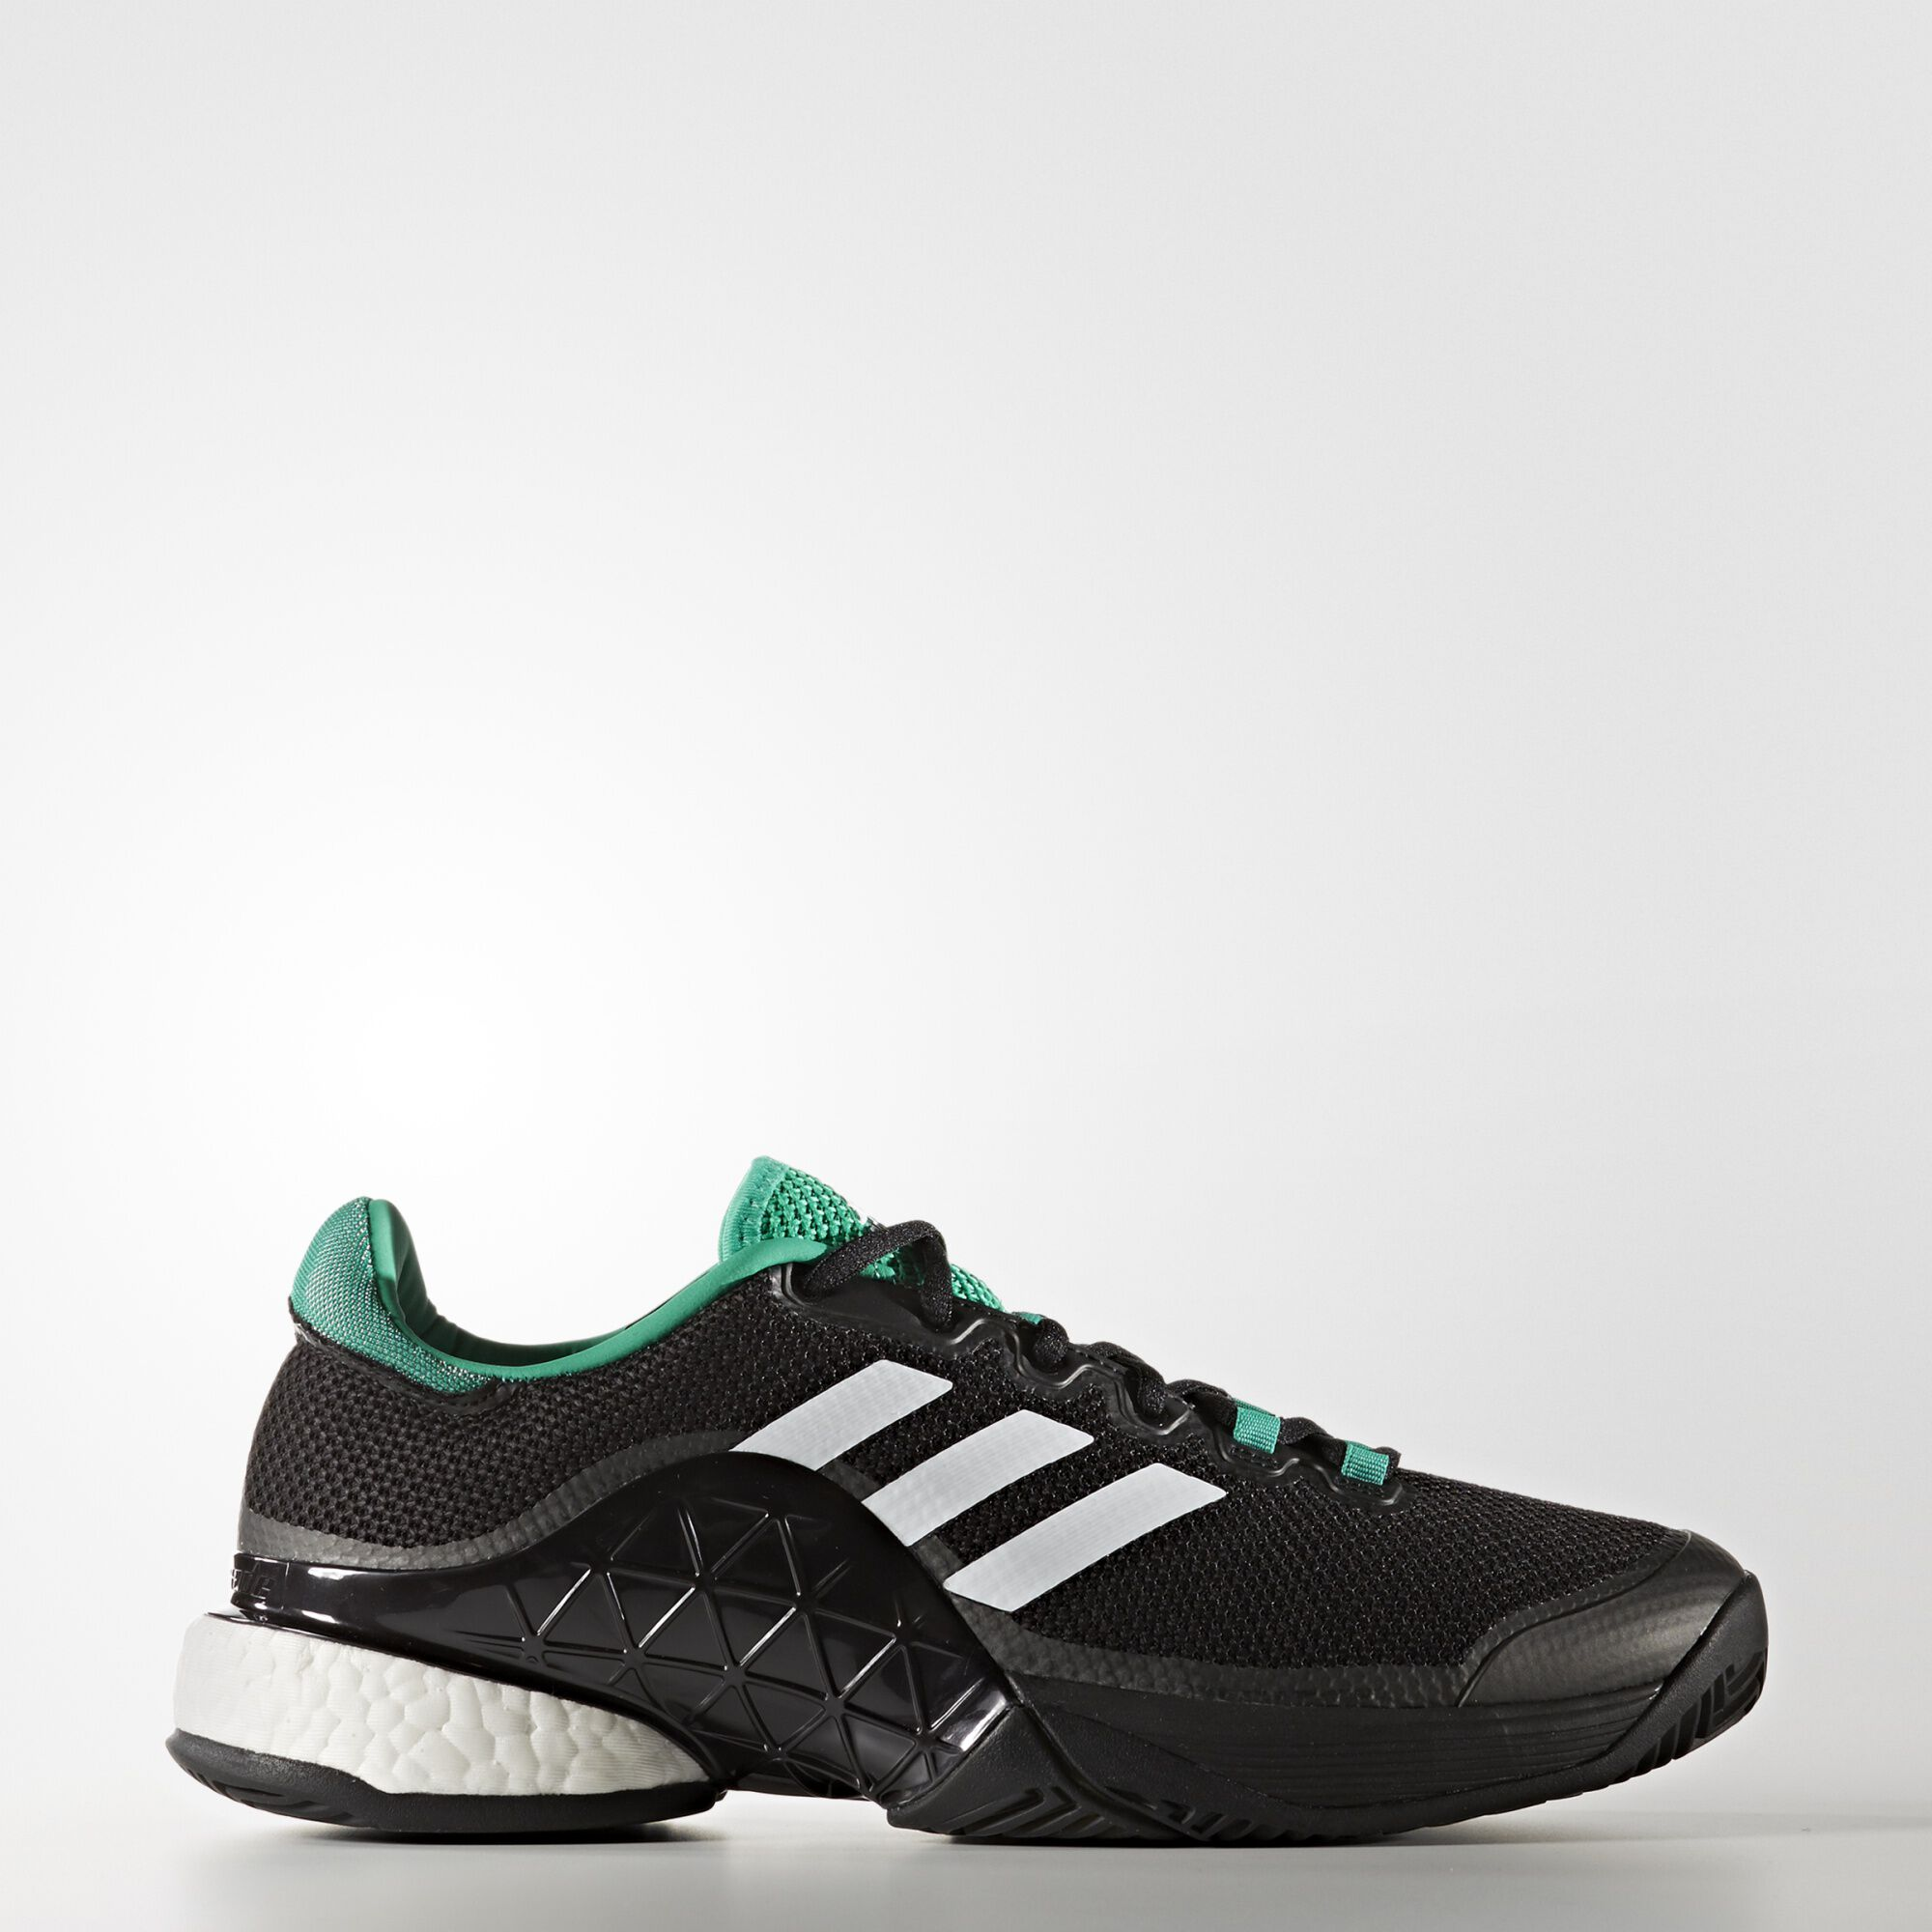 Adidas Shoes Collection 2017